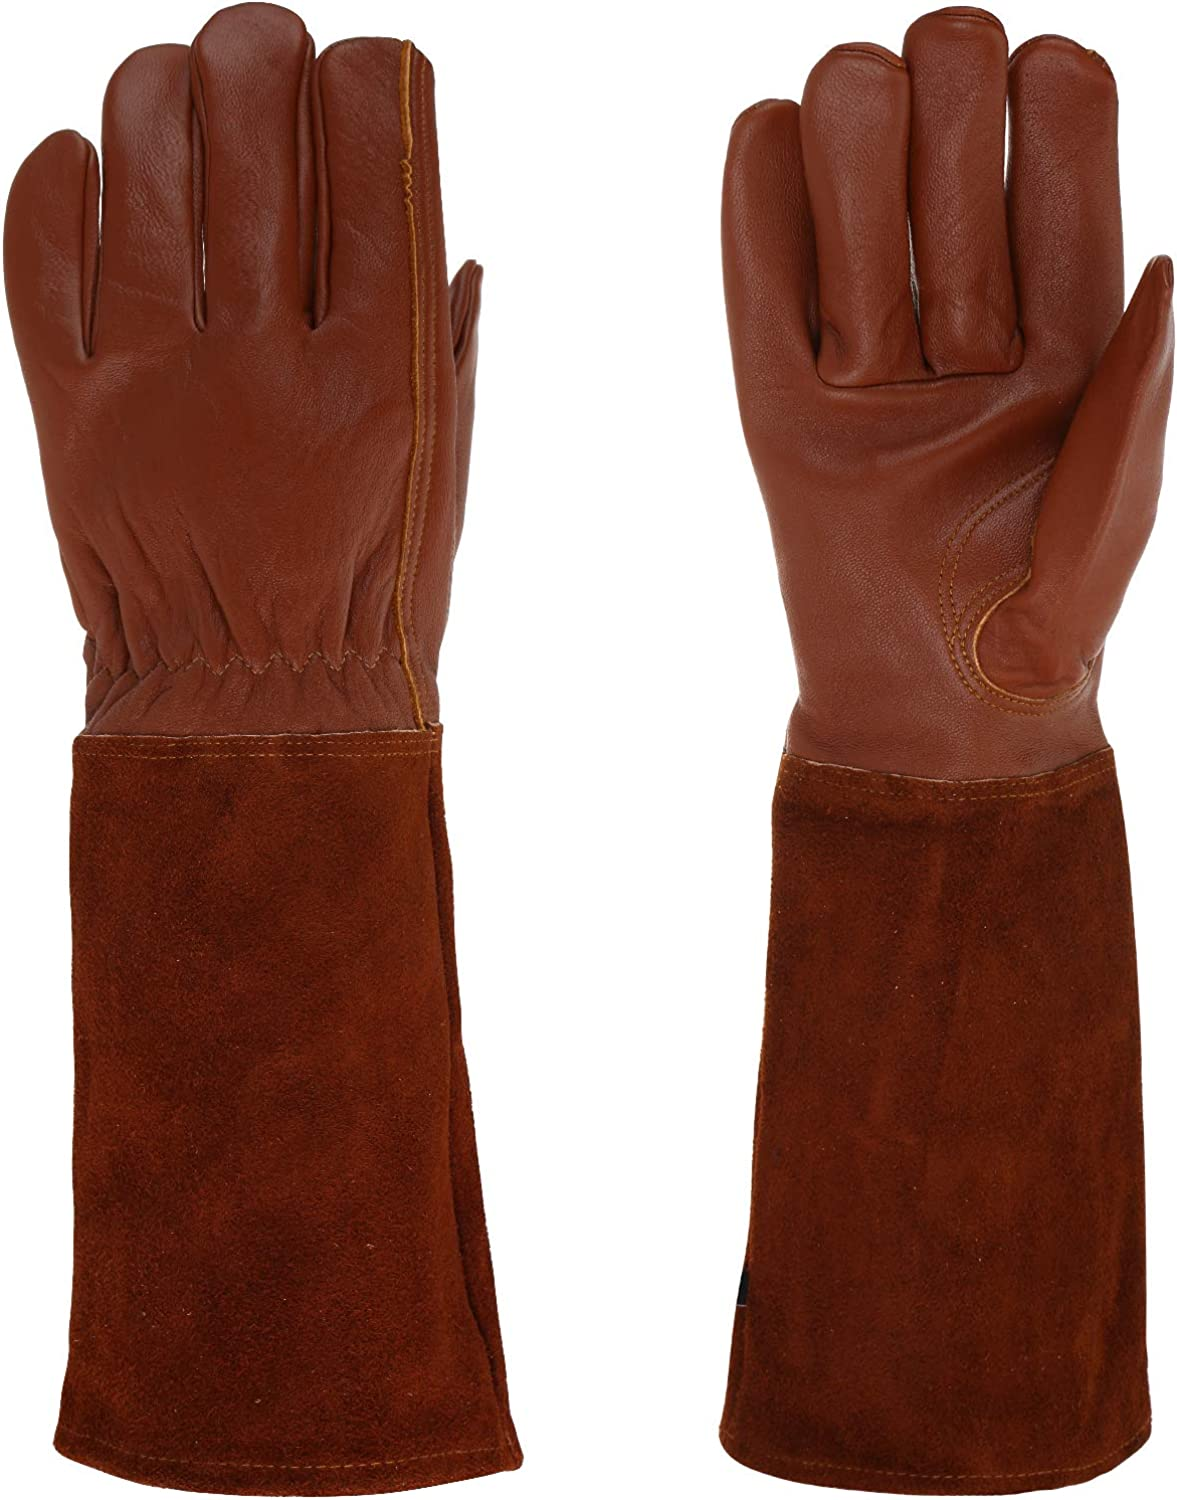 RXG Rose Pruning Gloves Long Sleeves for Men and Women Breathable Goatskin Leather Stab-resistant Garden Gloves Best Gardening Gifts and Tools for Gardeners and Farmers